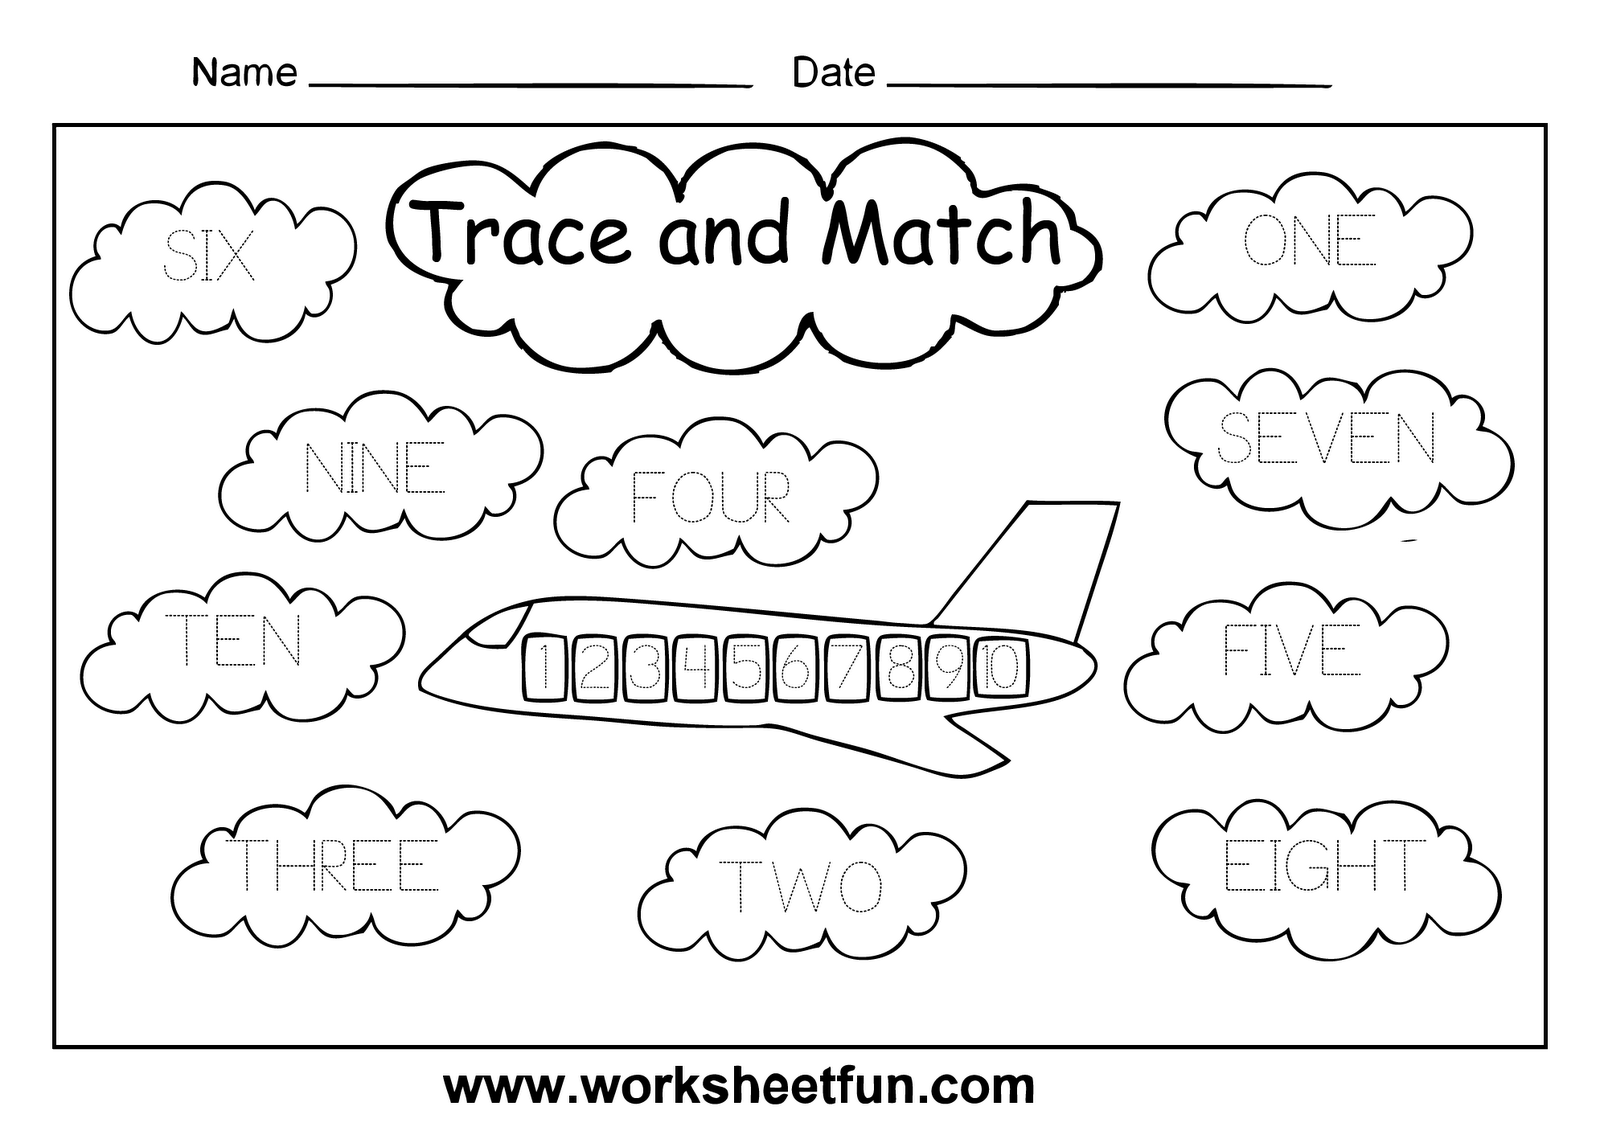 Proatmealus  Scenic Numbers Worksheet    Narrativamente With Interesting Classroom Rules Worksheets Besides Money Coloring Worksheets Furthermore Plasma Membrane Diagram Worksheet With Cool Free Printable Reading Comprehension Worksheets For Middle School Also Types Of Triangle Worksheet In Addition Friendship Worksheets For Kids And Editing Worksheets Th Grade As Well As Nouns Worksheet High School Additionally Cell Division Worksheets From Narrativamentecom With Proatmealus  Interesting Numbers Worksheet    Narrativamente With Cool Classroom Rules Worksheets Besides Money Coloring Worksheets Furthermore Plasma Membrane Diagram Worksheet And Scenic Free Printable Reading Comprehension Worksheets For Middle School Also Types Of Triangle Worksheet In Addition Friendship Worksheets For Kids From Narrativamentecom